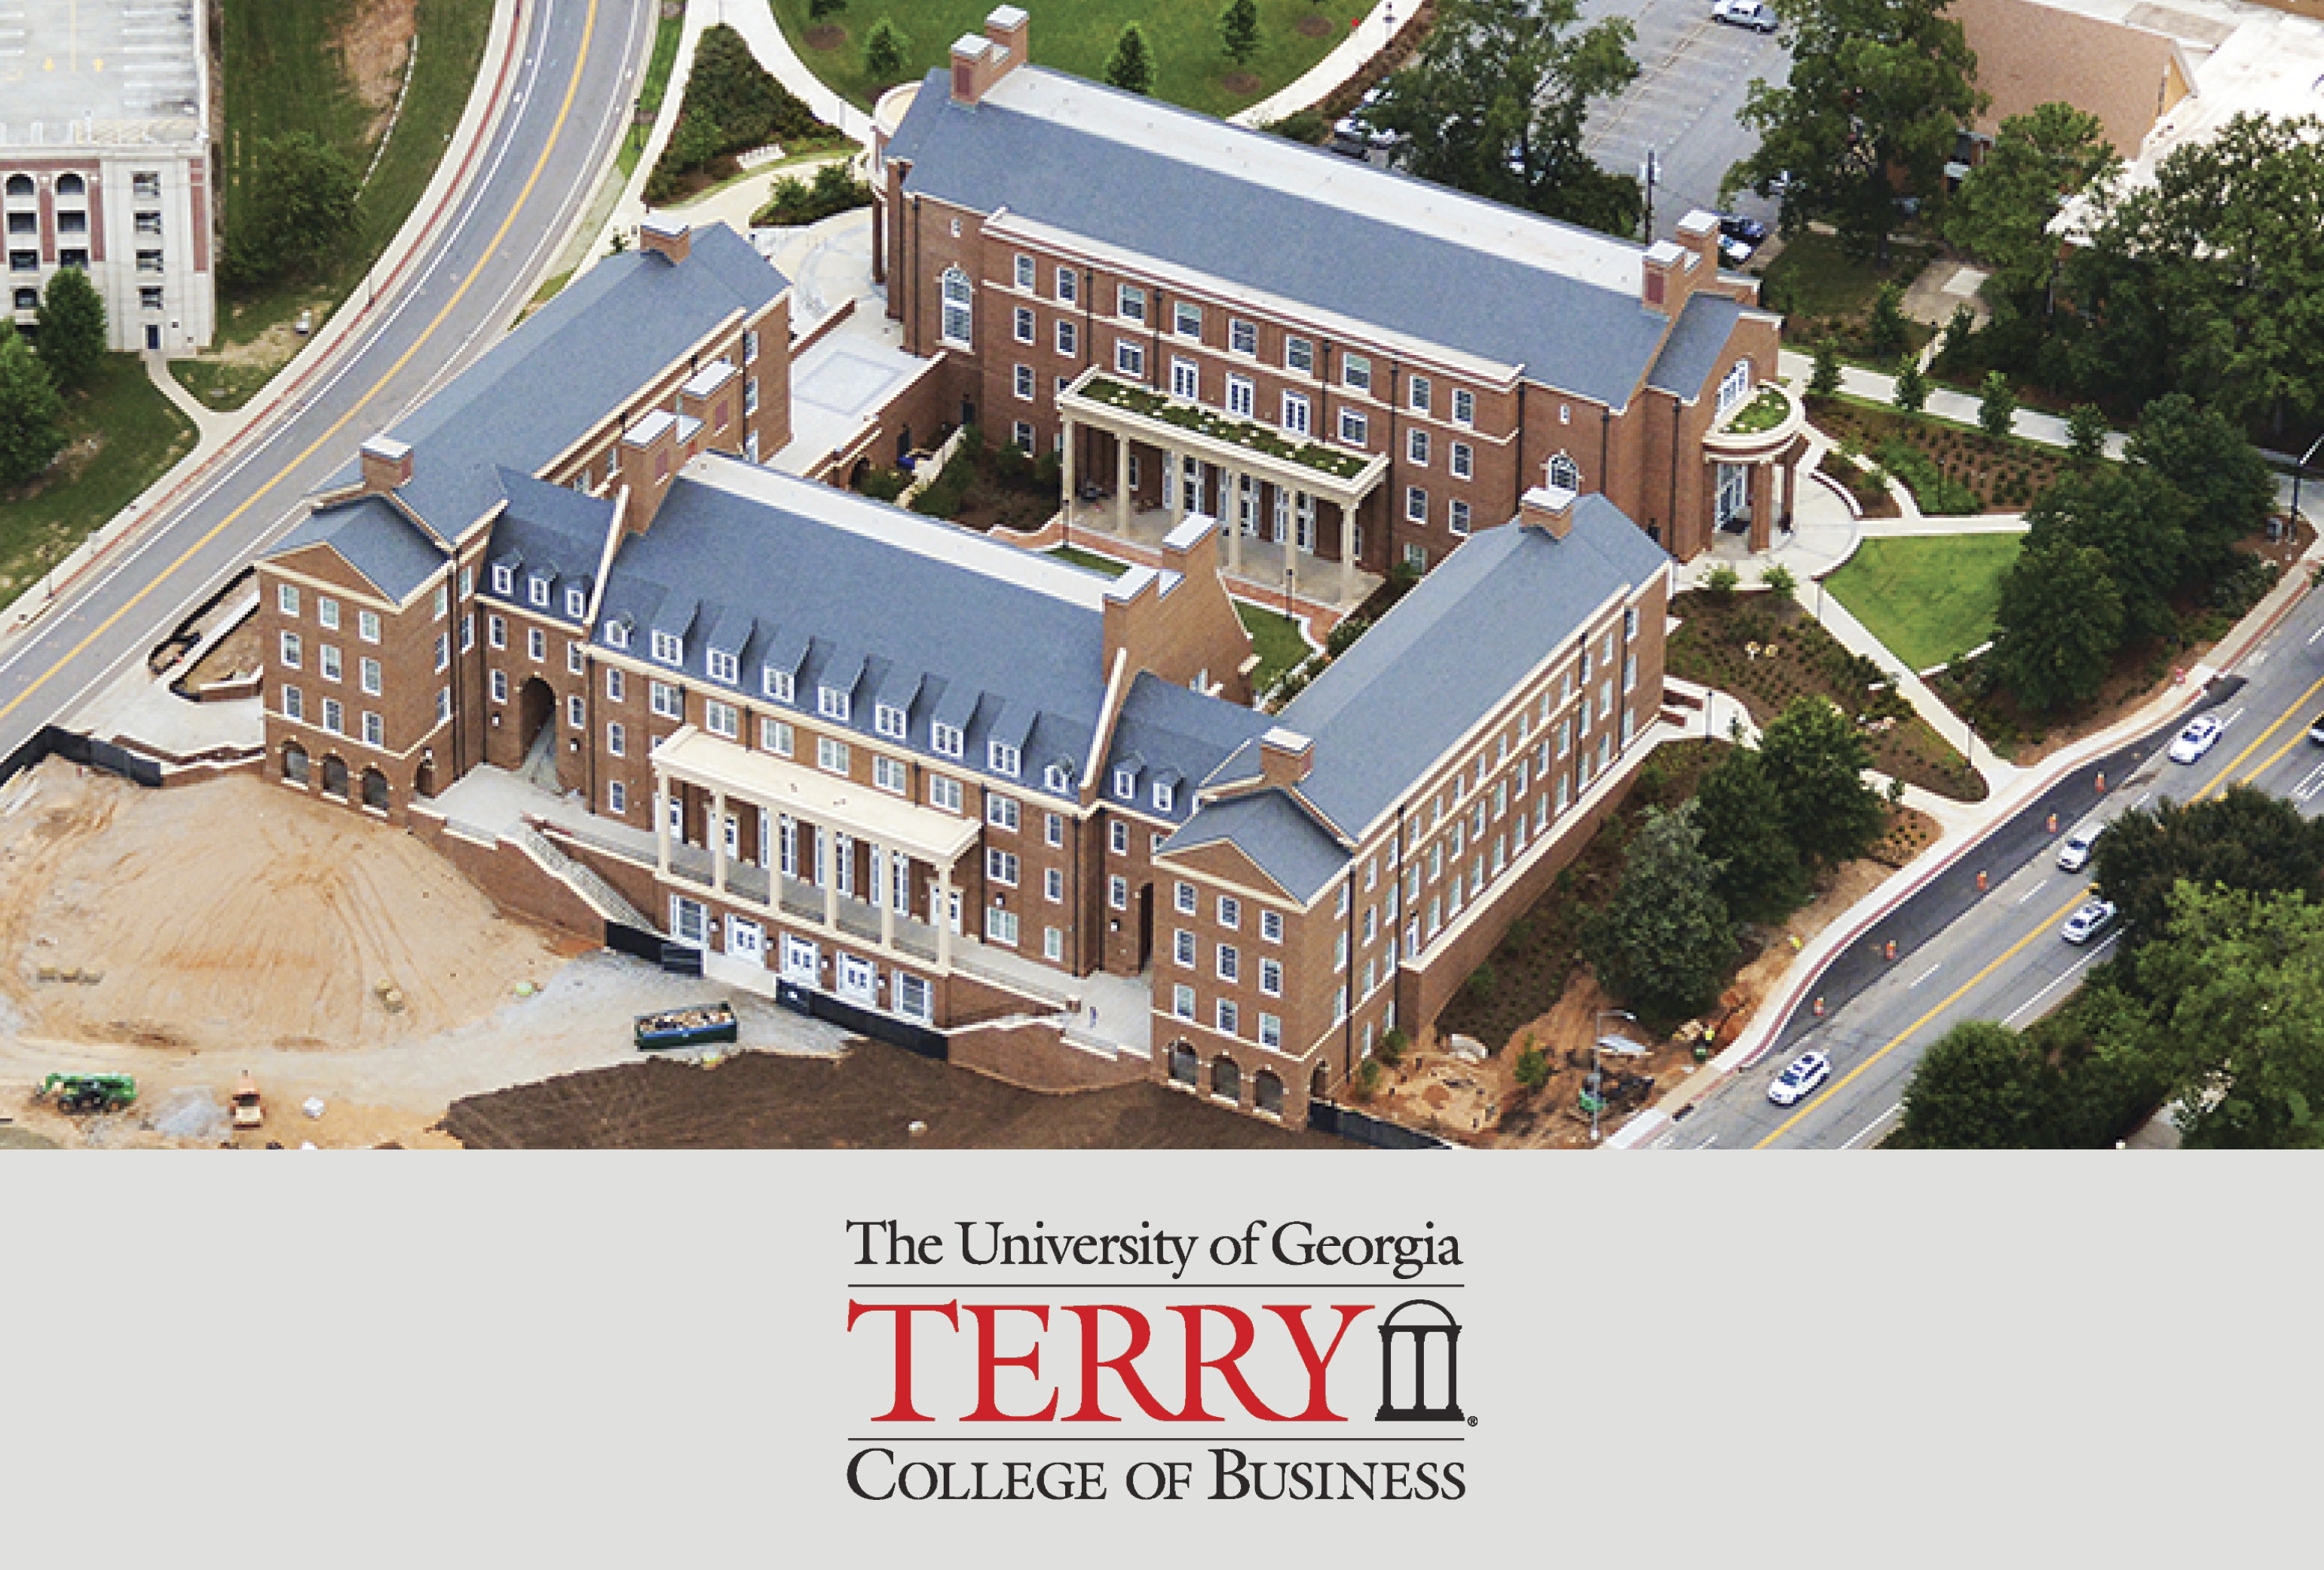 The University of Georgia Dedicates Phase II, Breaks Ground on Phase III of the Business Learning Community at the Terry College of Business